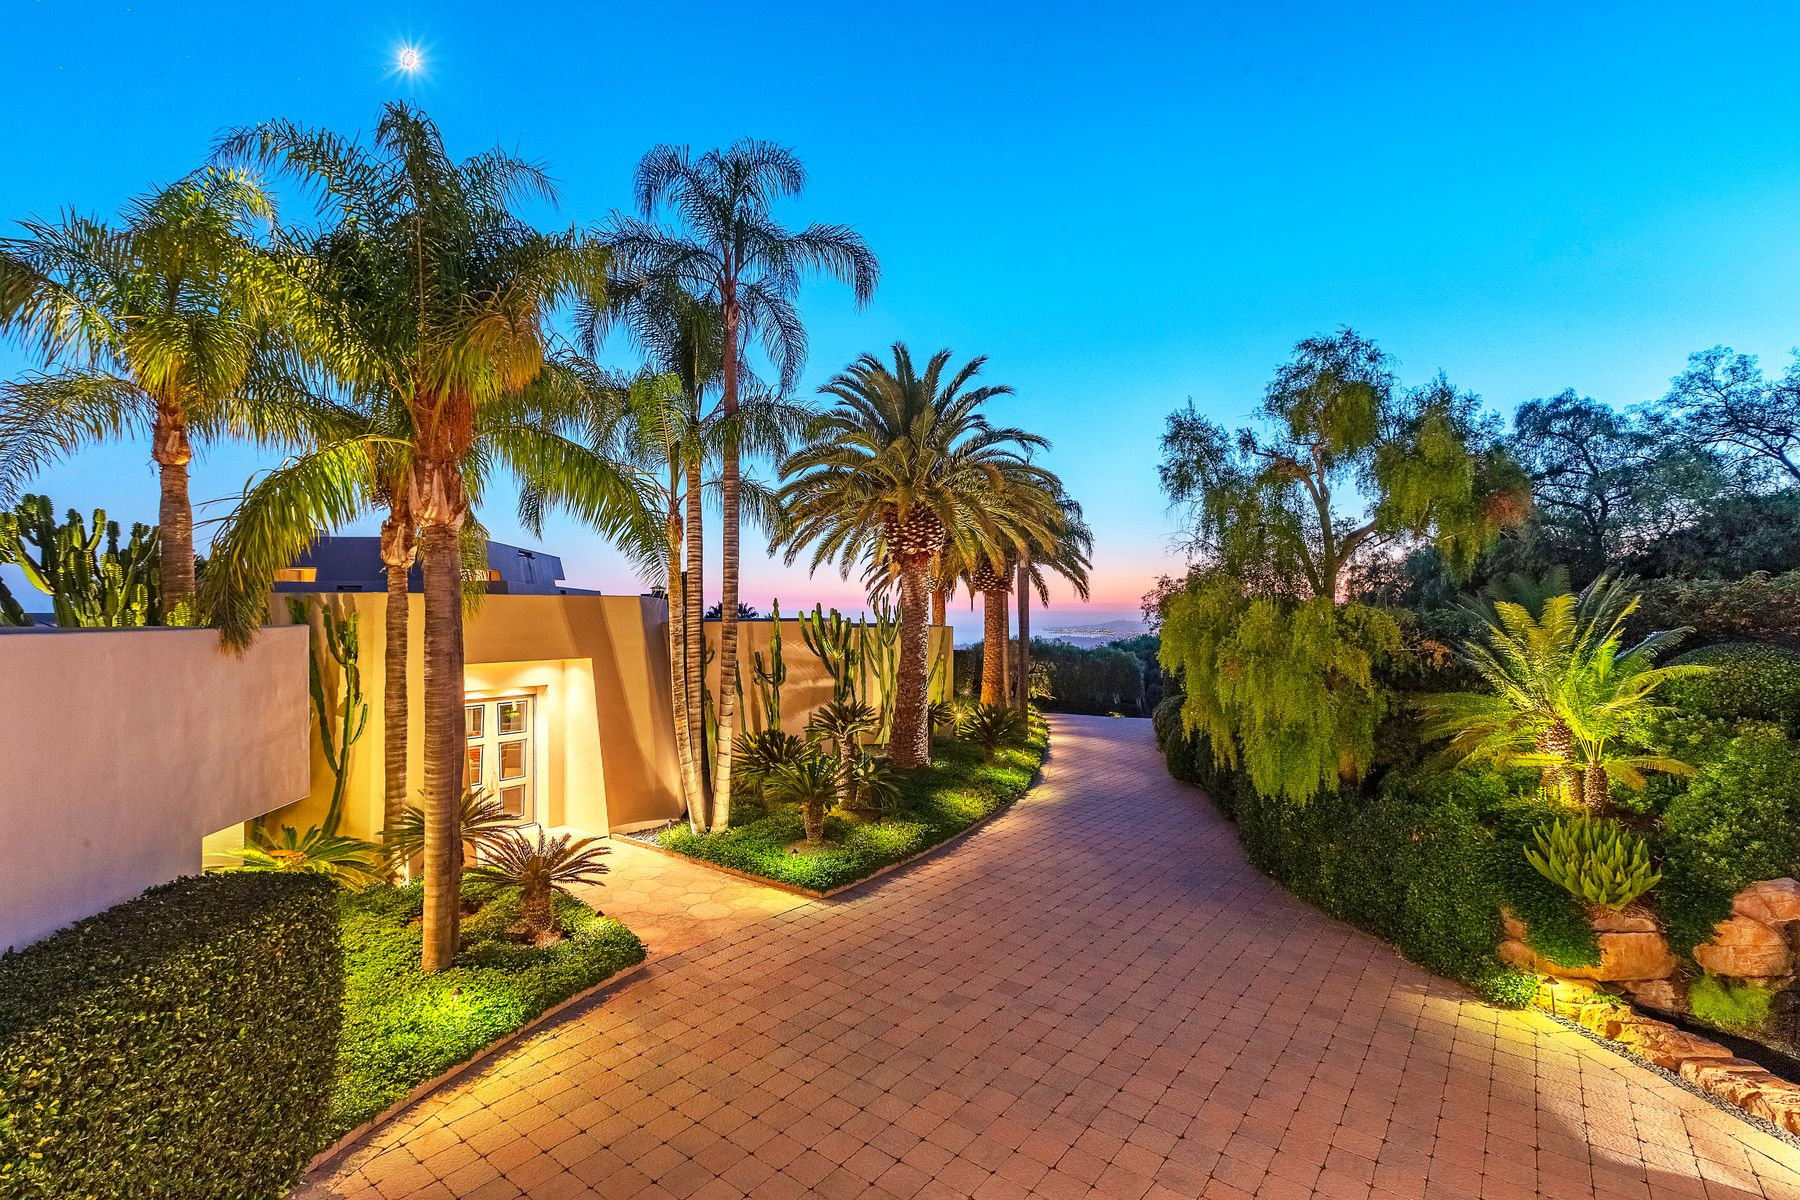 Property for Sale at Stunning Montecito Contemporary 2775 Bella Vista Dr Montecito, California 93108 United States